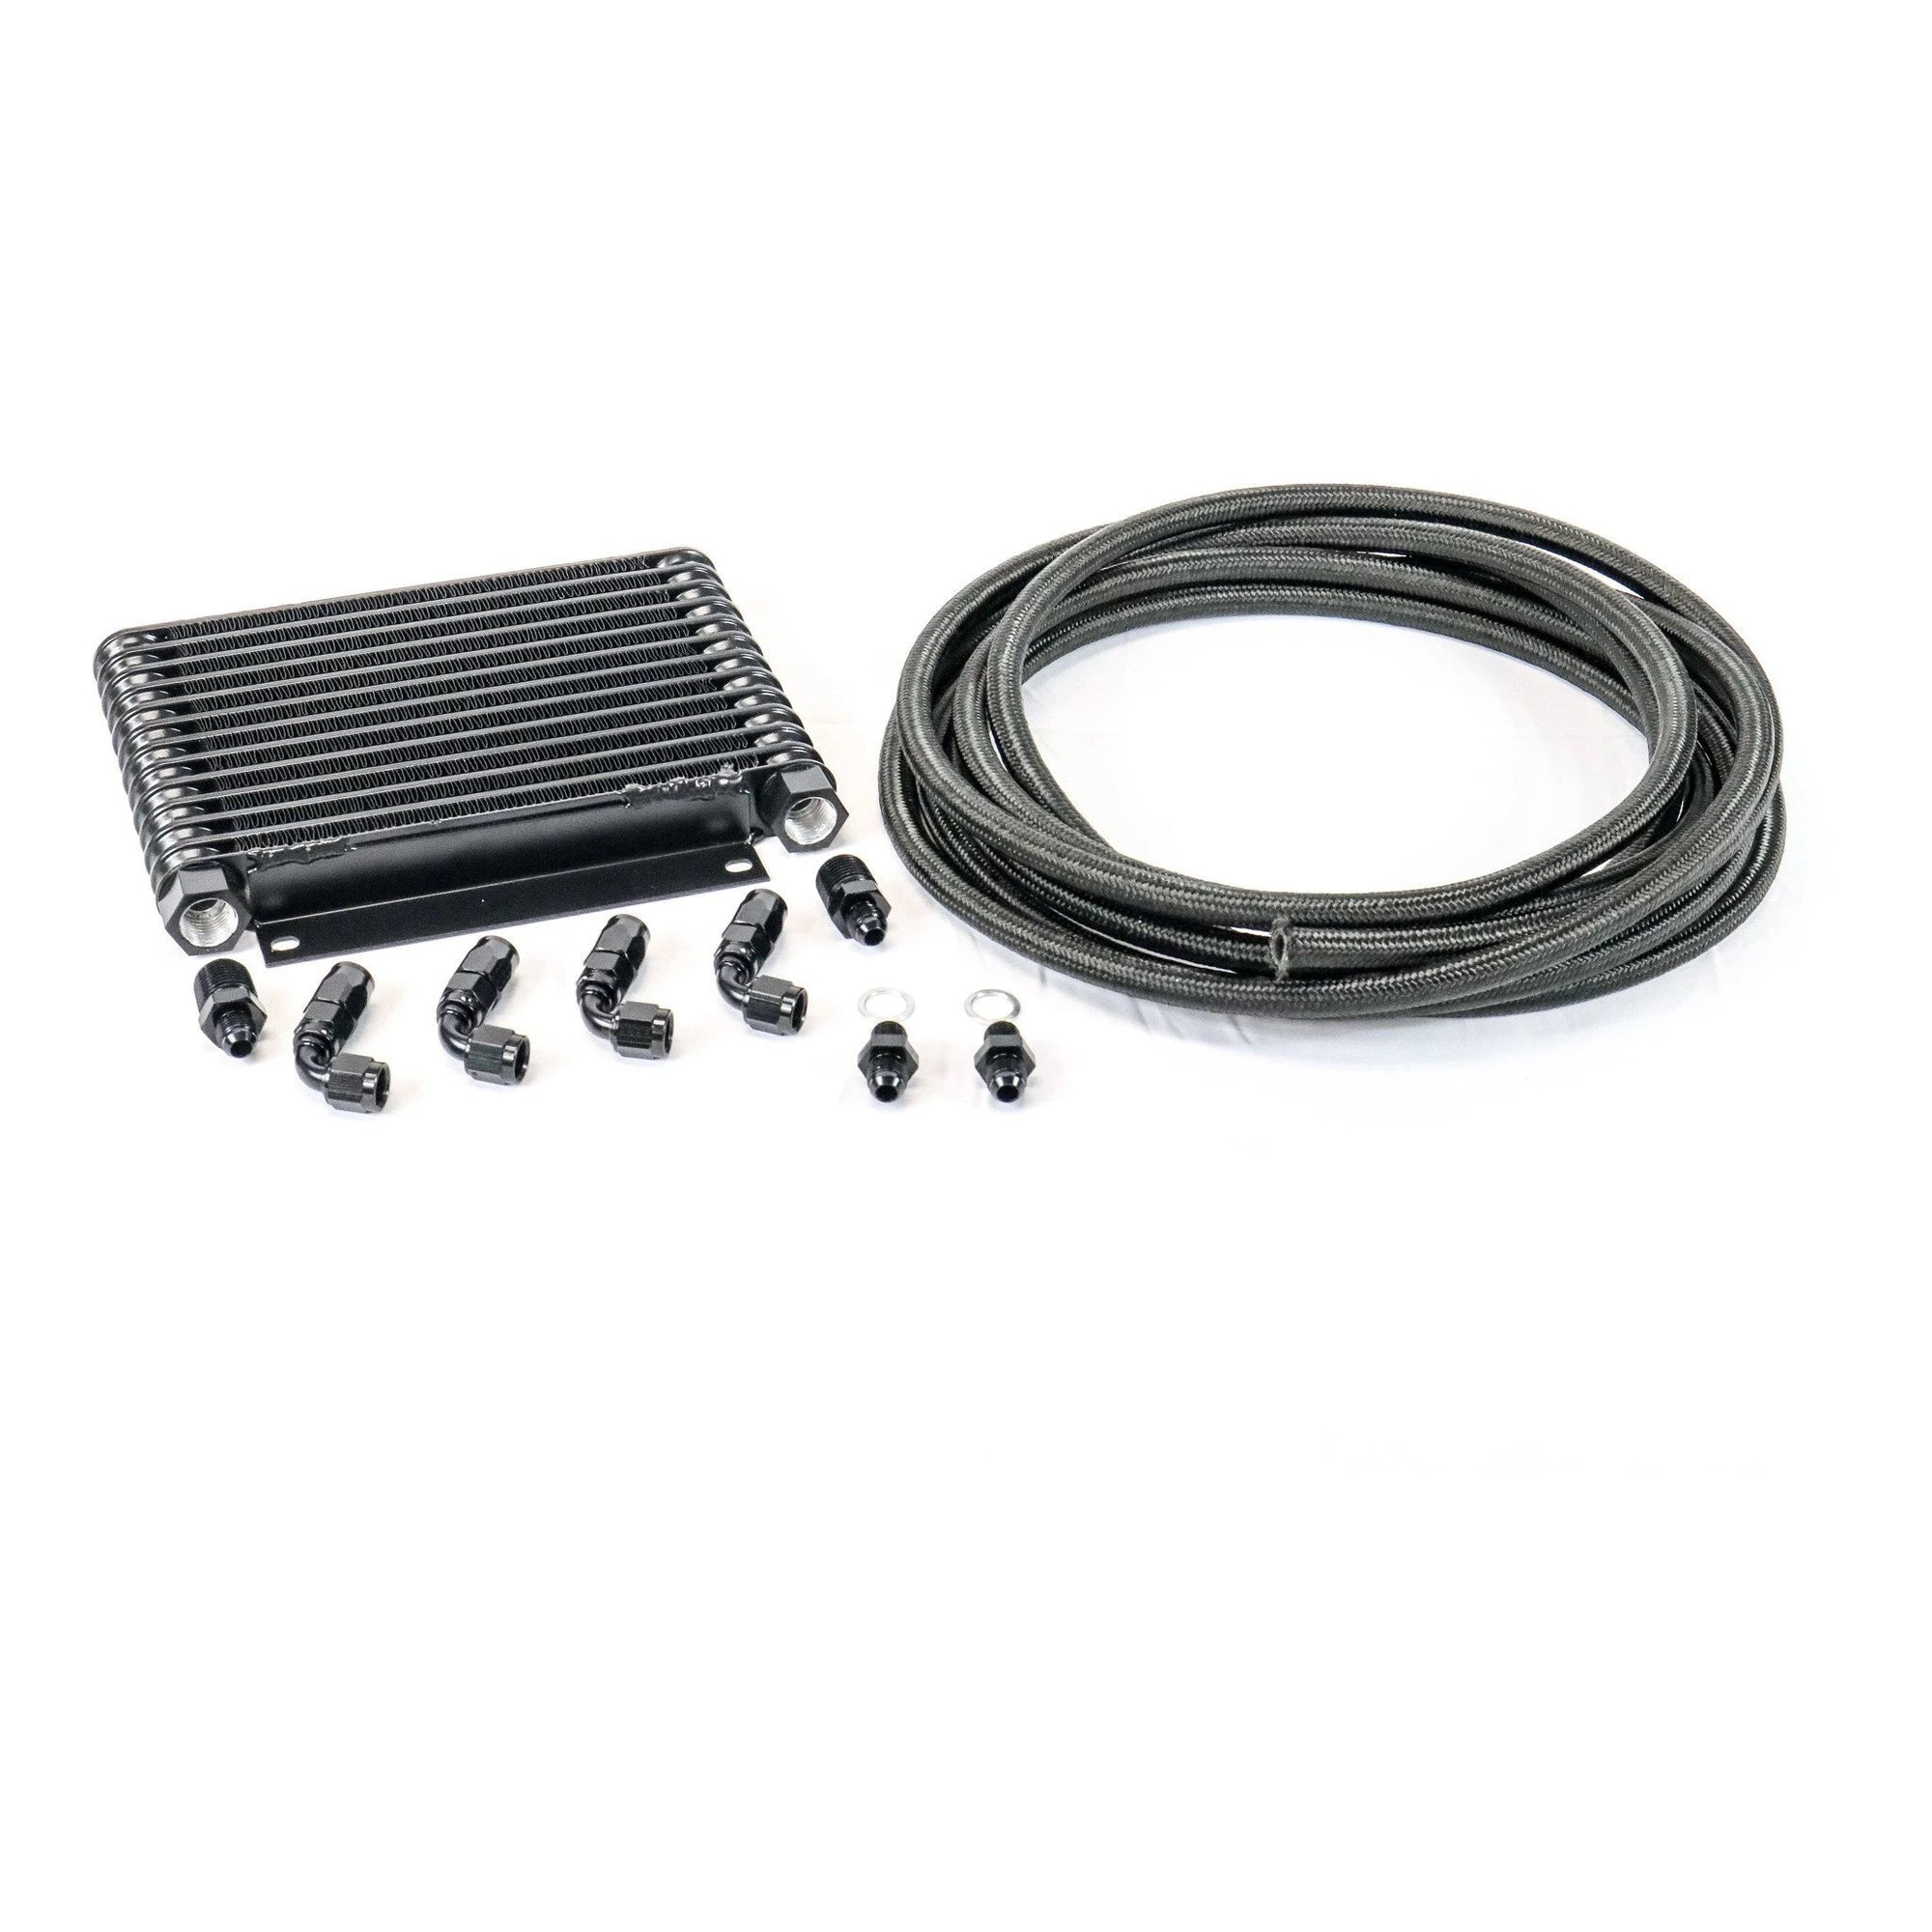 Stock Powerglide Derale Trans Cooler Kit w/Fragola Lines/Fittings-Kit-Motion Raceworks